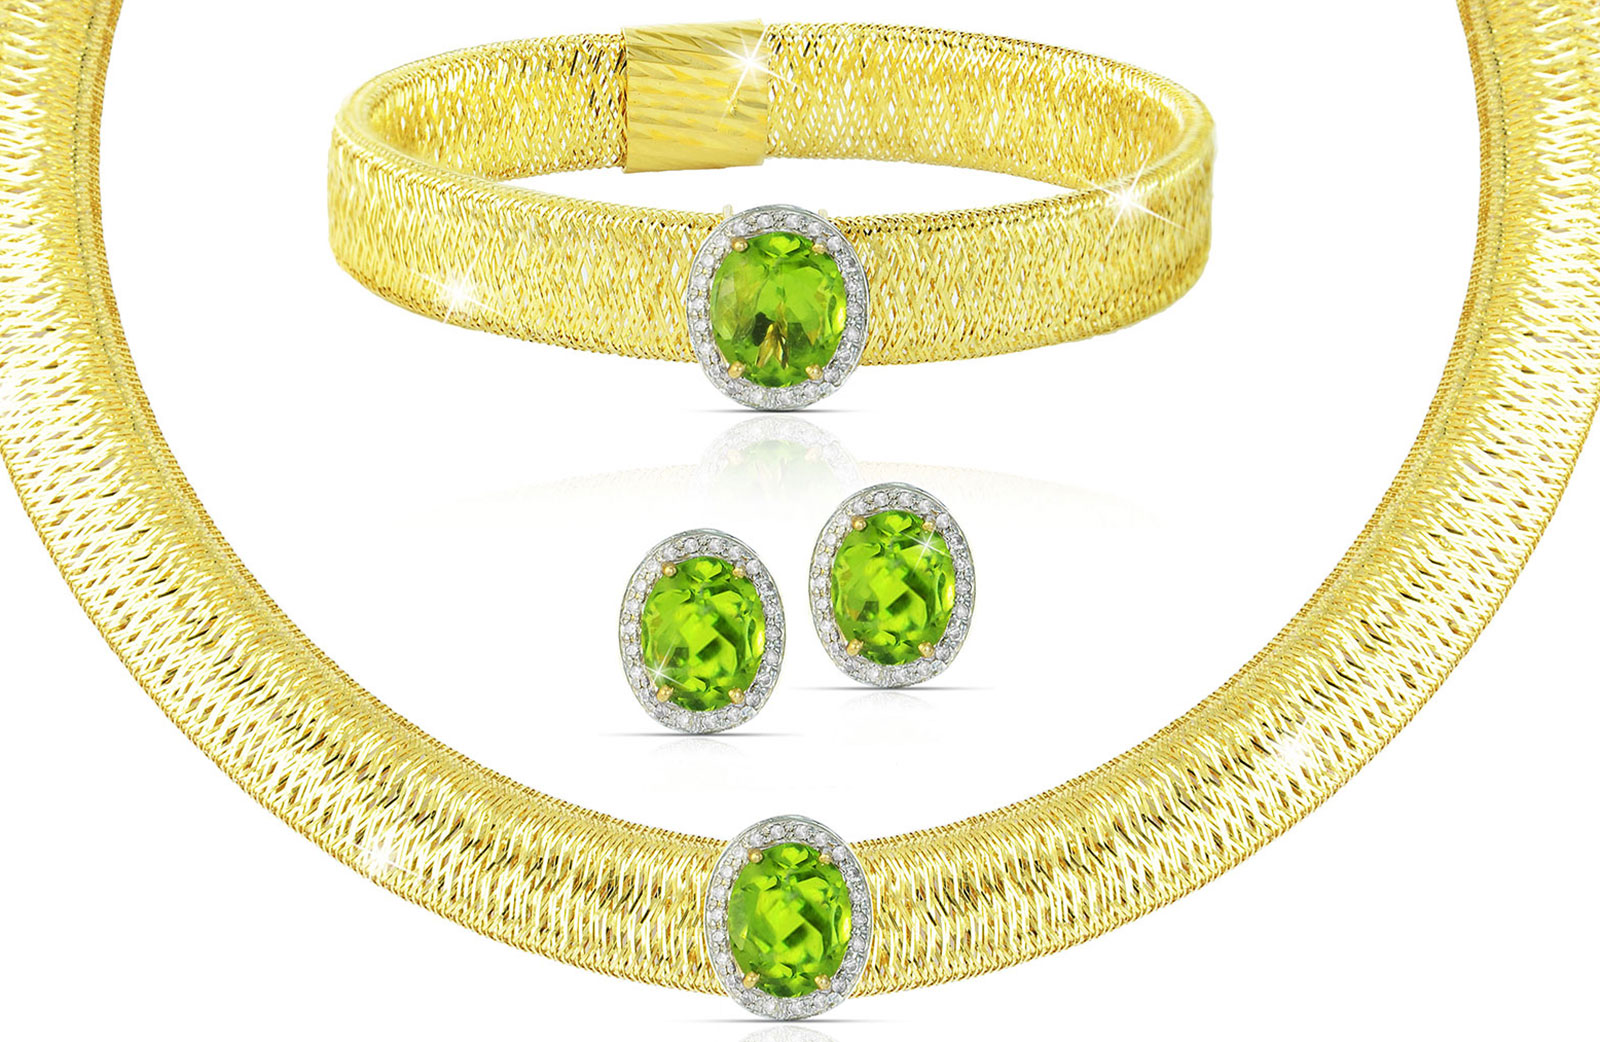 Vera Perla 18K  Gold 0.52Cts Genuine Diamonds and 10mm Genuine Peridots Necklace, Bracelet and earrings Set